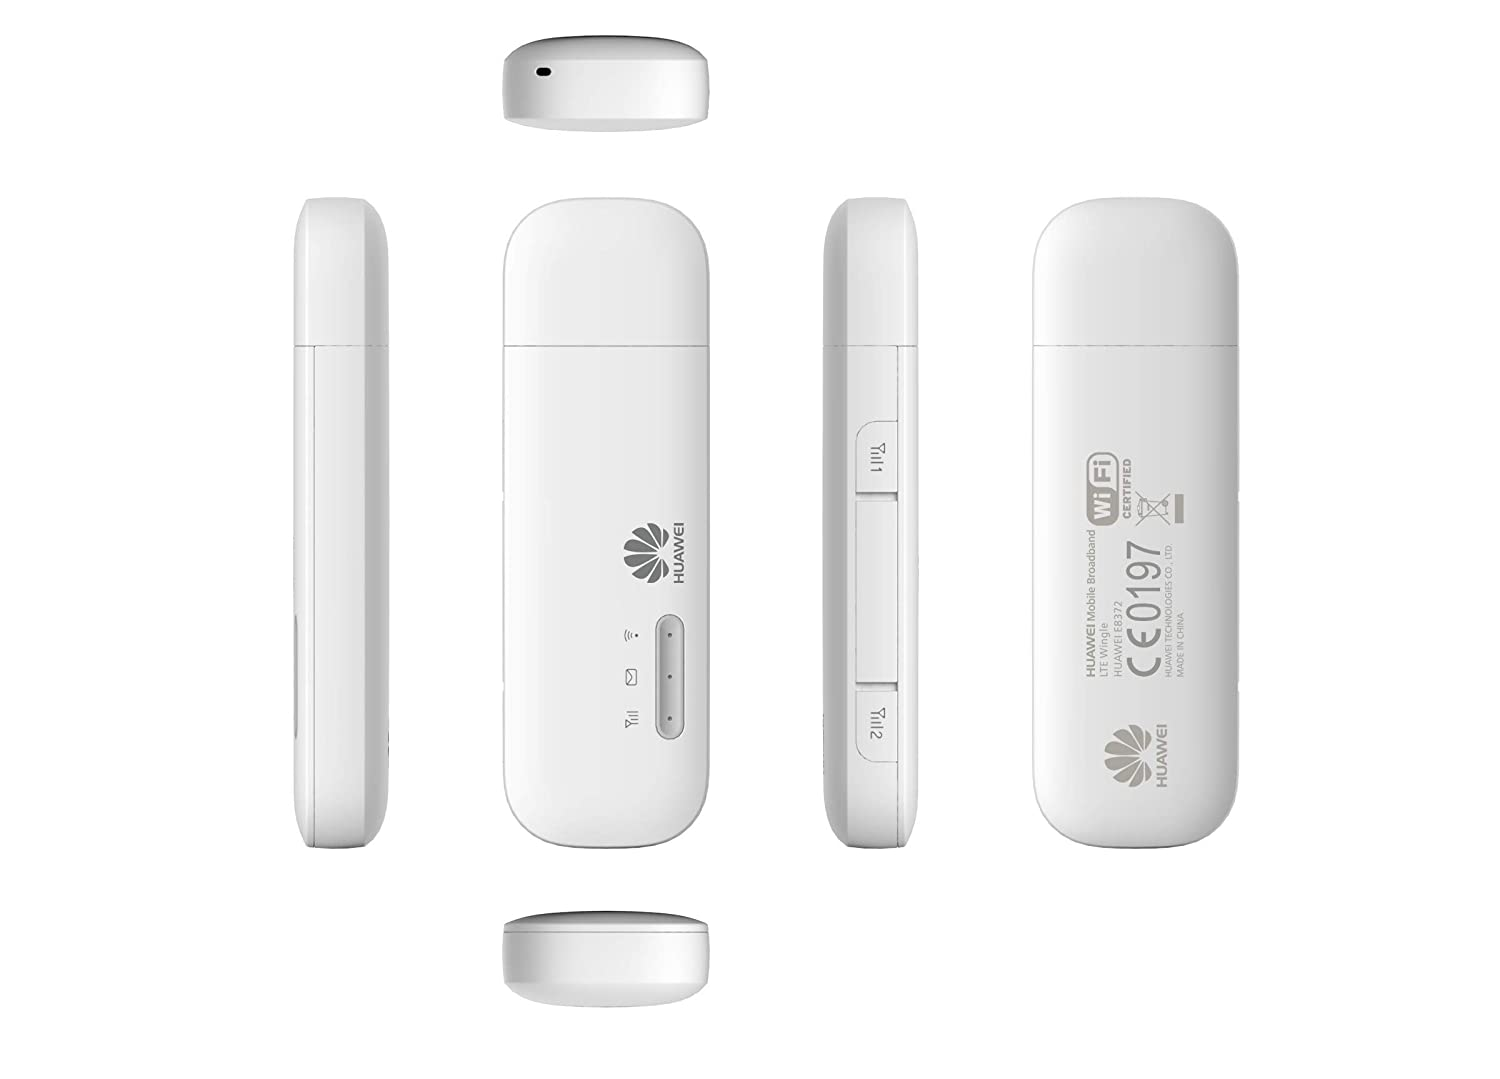 Huawei E8372h-153 Unlocked 150 Mbps 4G LTE & 43 2 Mpbs WiFi USB Wingle (4G  LTE in Europe, Asia, Middle East and Africa) (White)